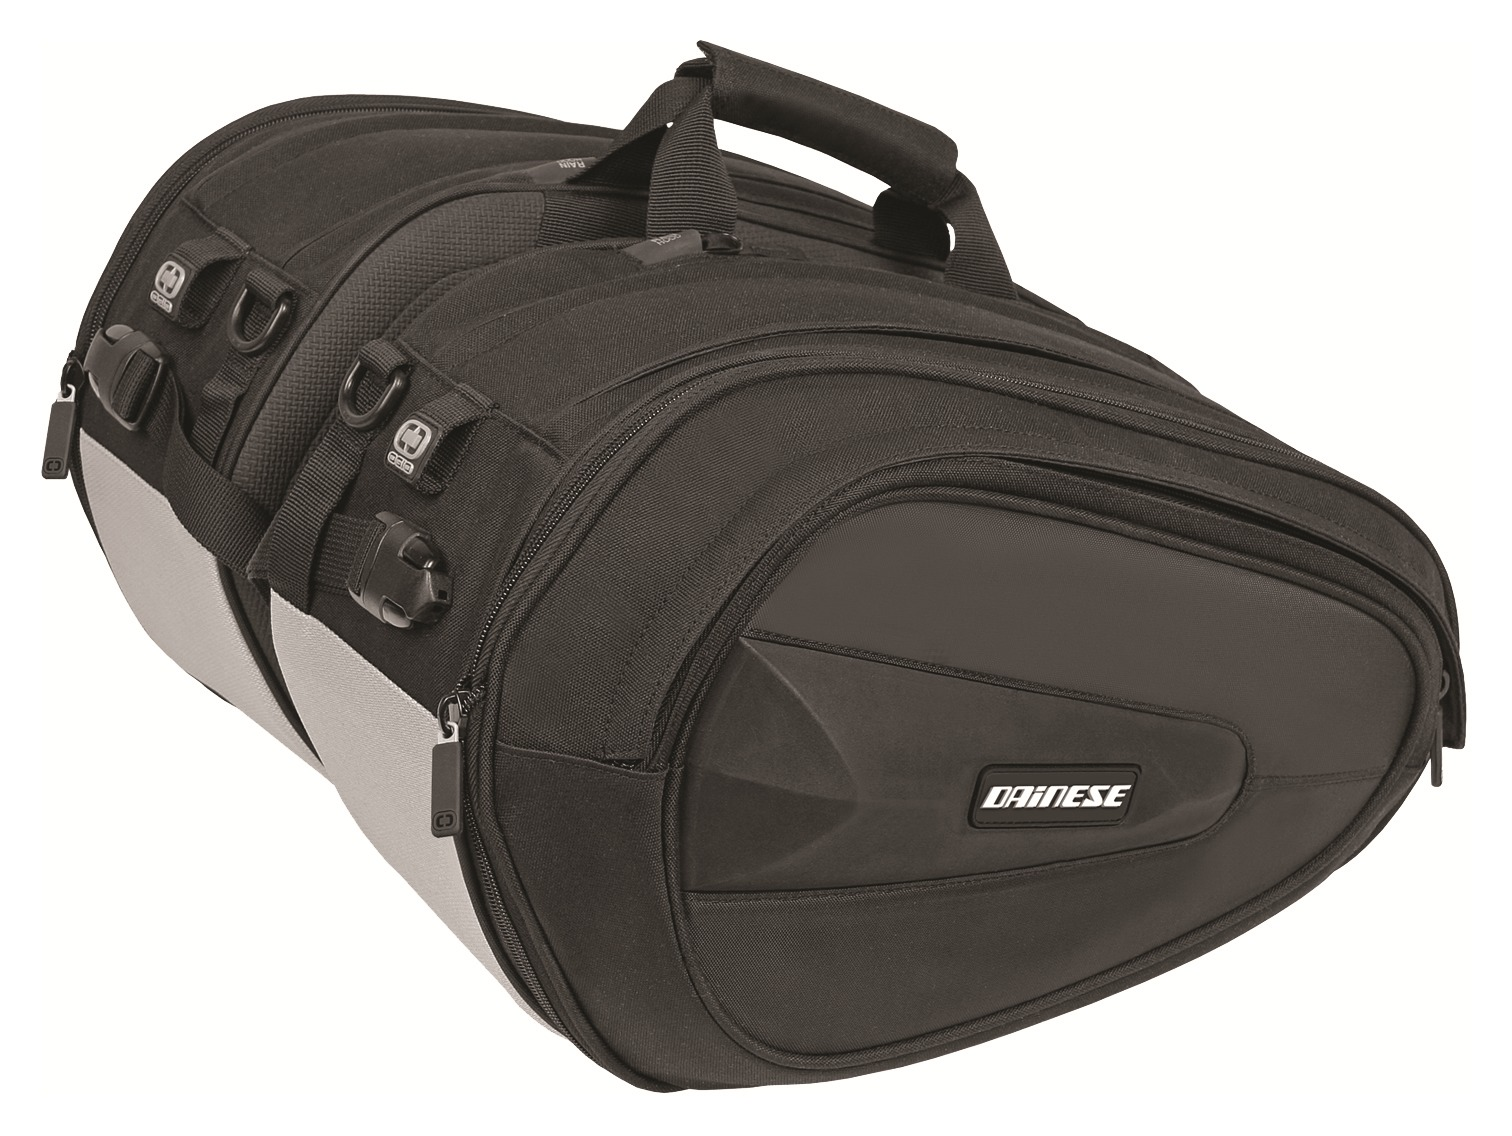 Dainese d saddle motorcycle saddlebags cycle gear for Motor cycle saddle bags